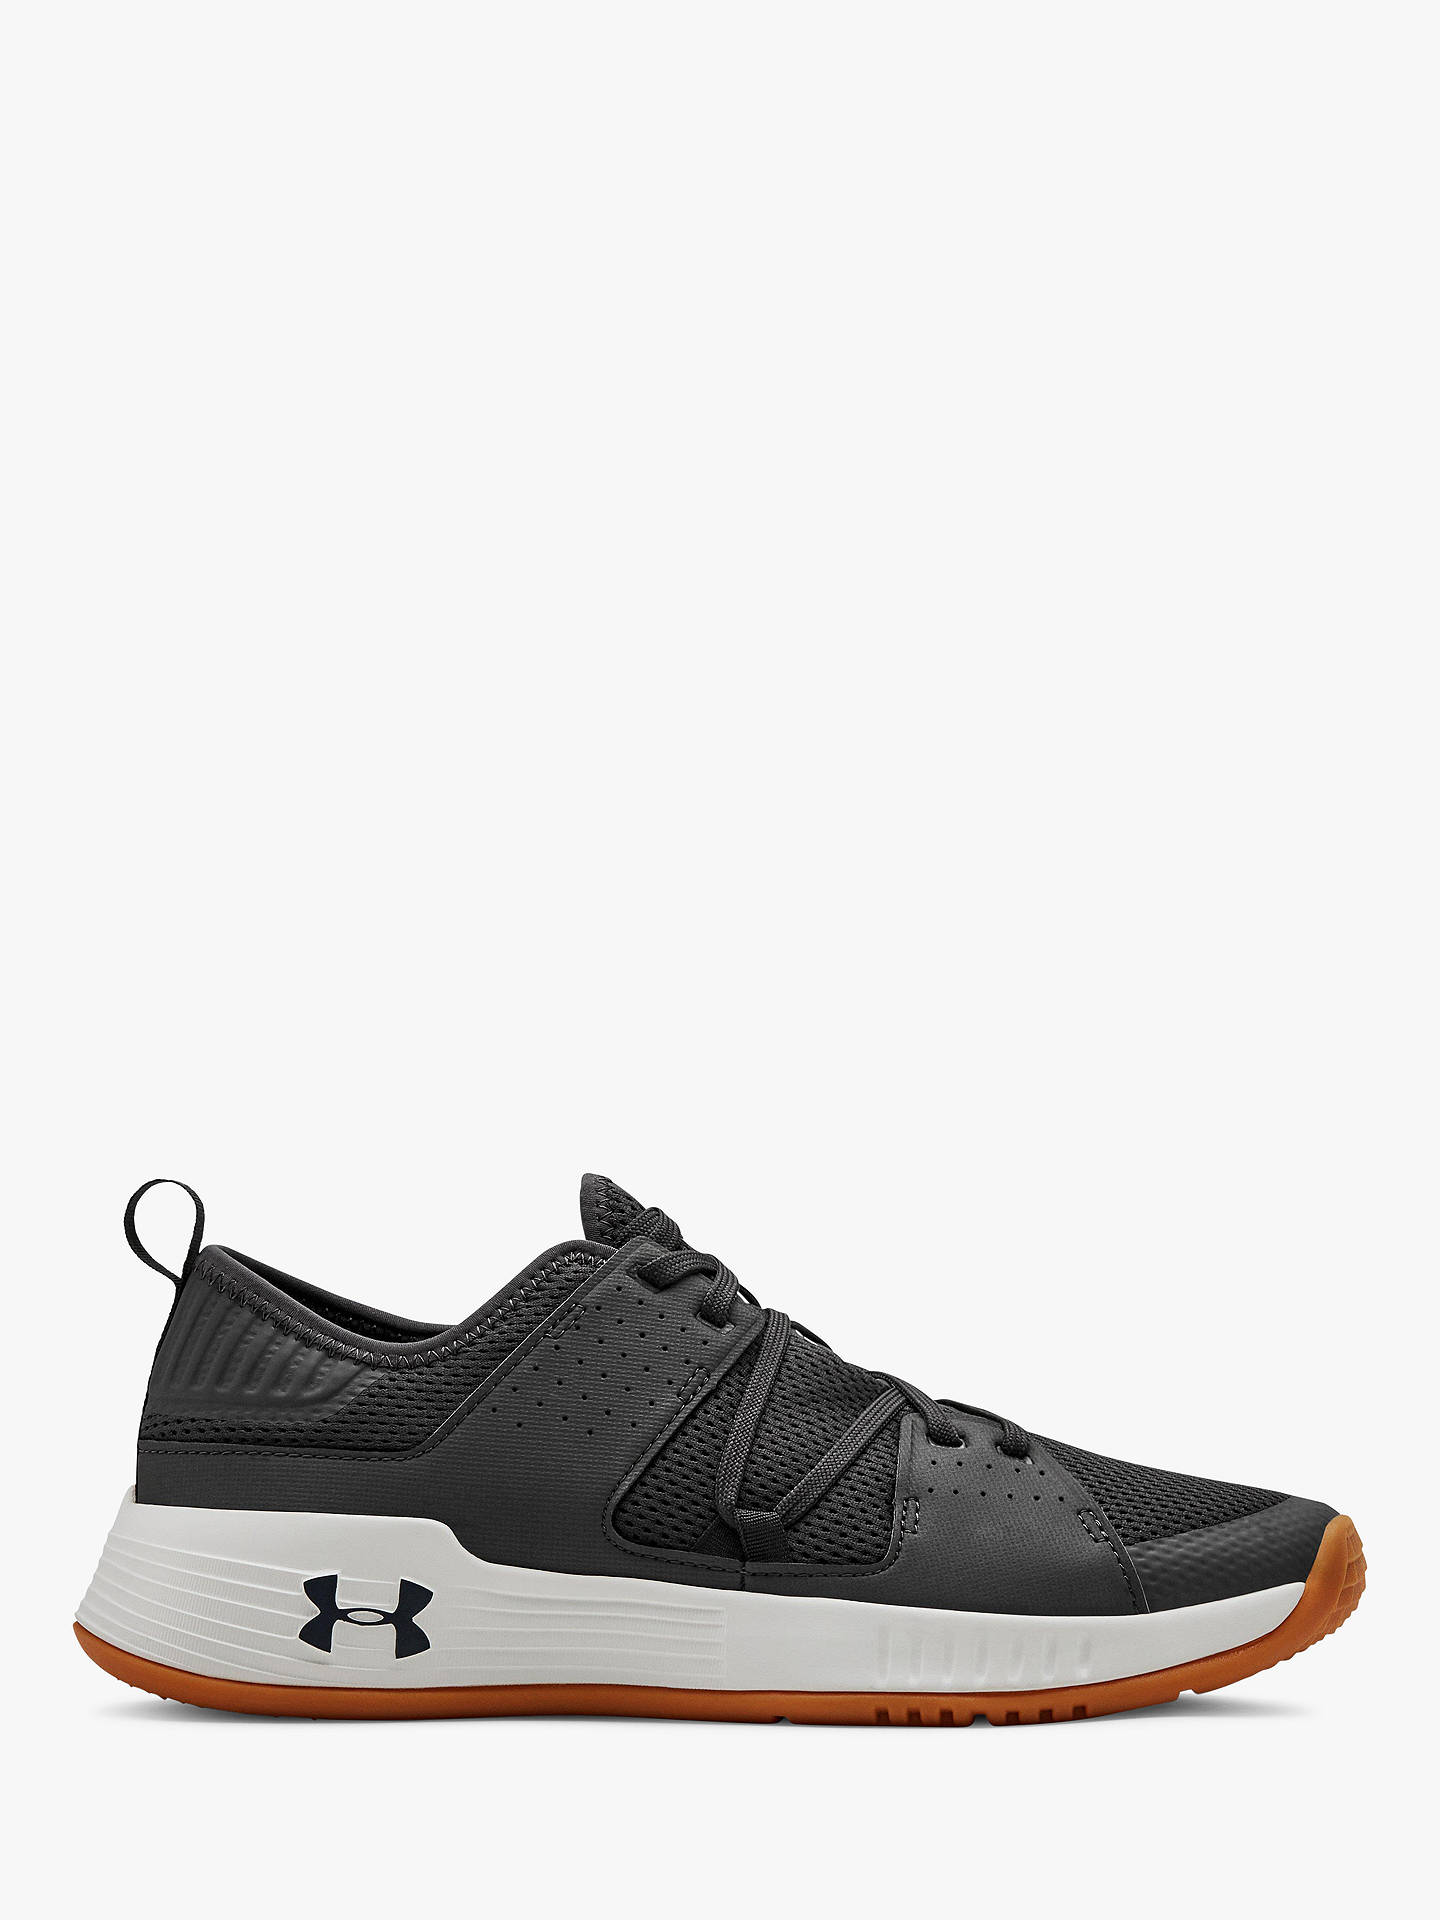 b9deb5775a Under Armour Showstopper 2.0 Men's Cross Trainers at John Lewis ...